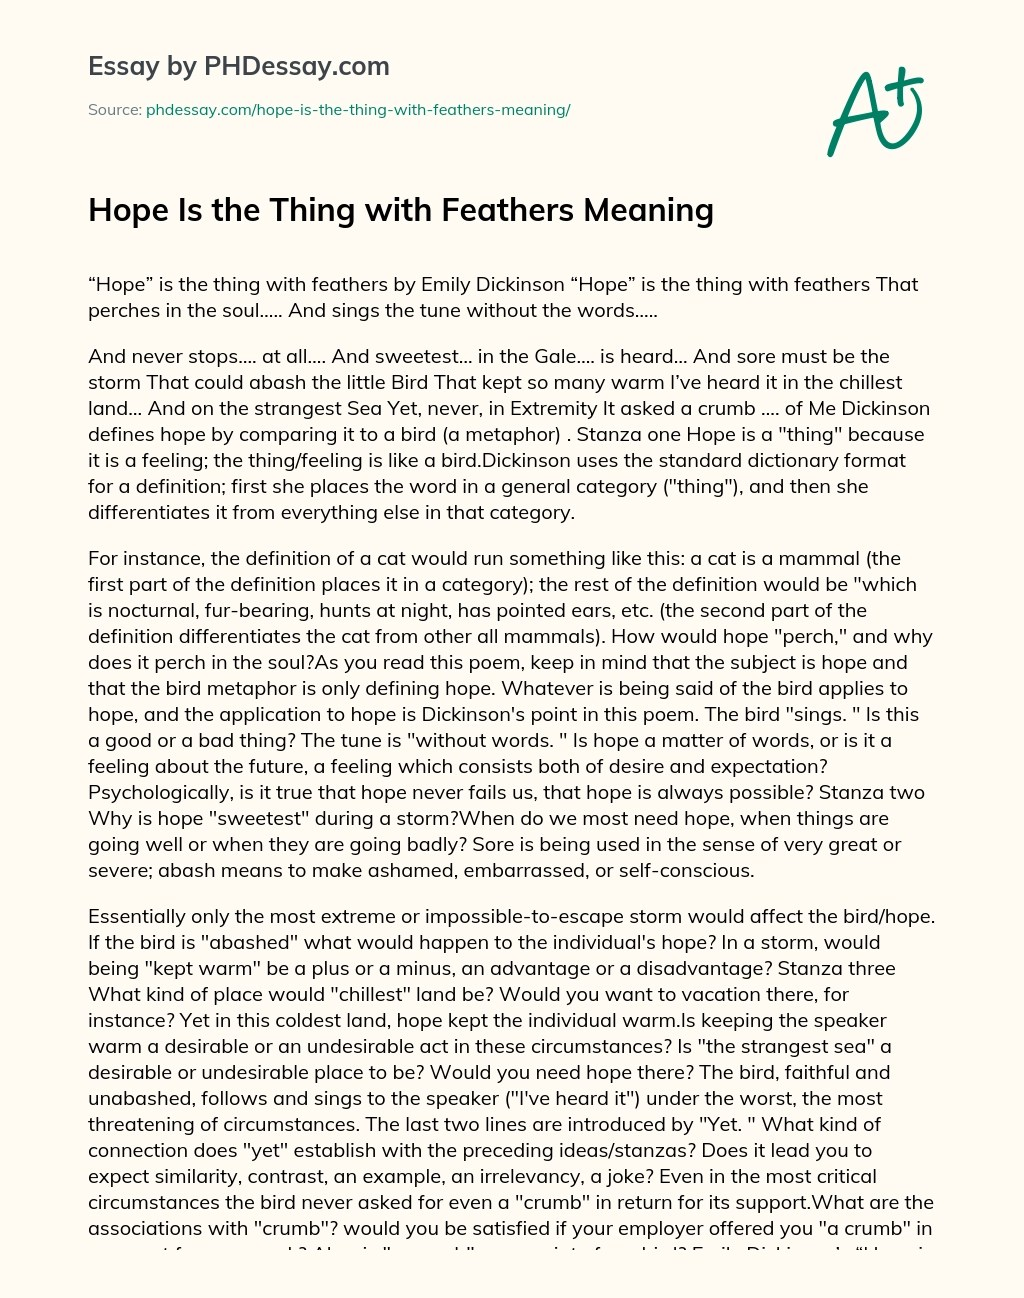 Hope Is The Thing With Feathers Theme Essay Example